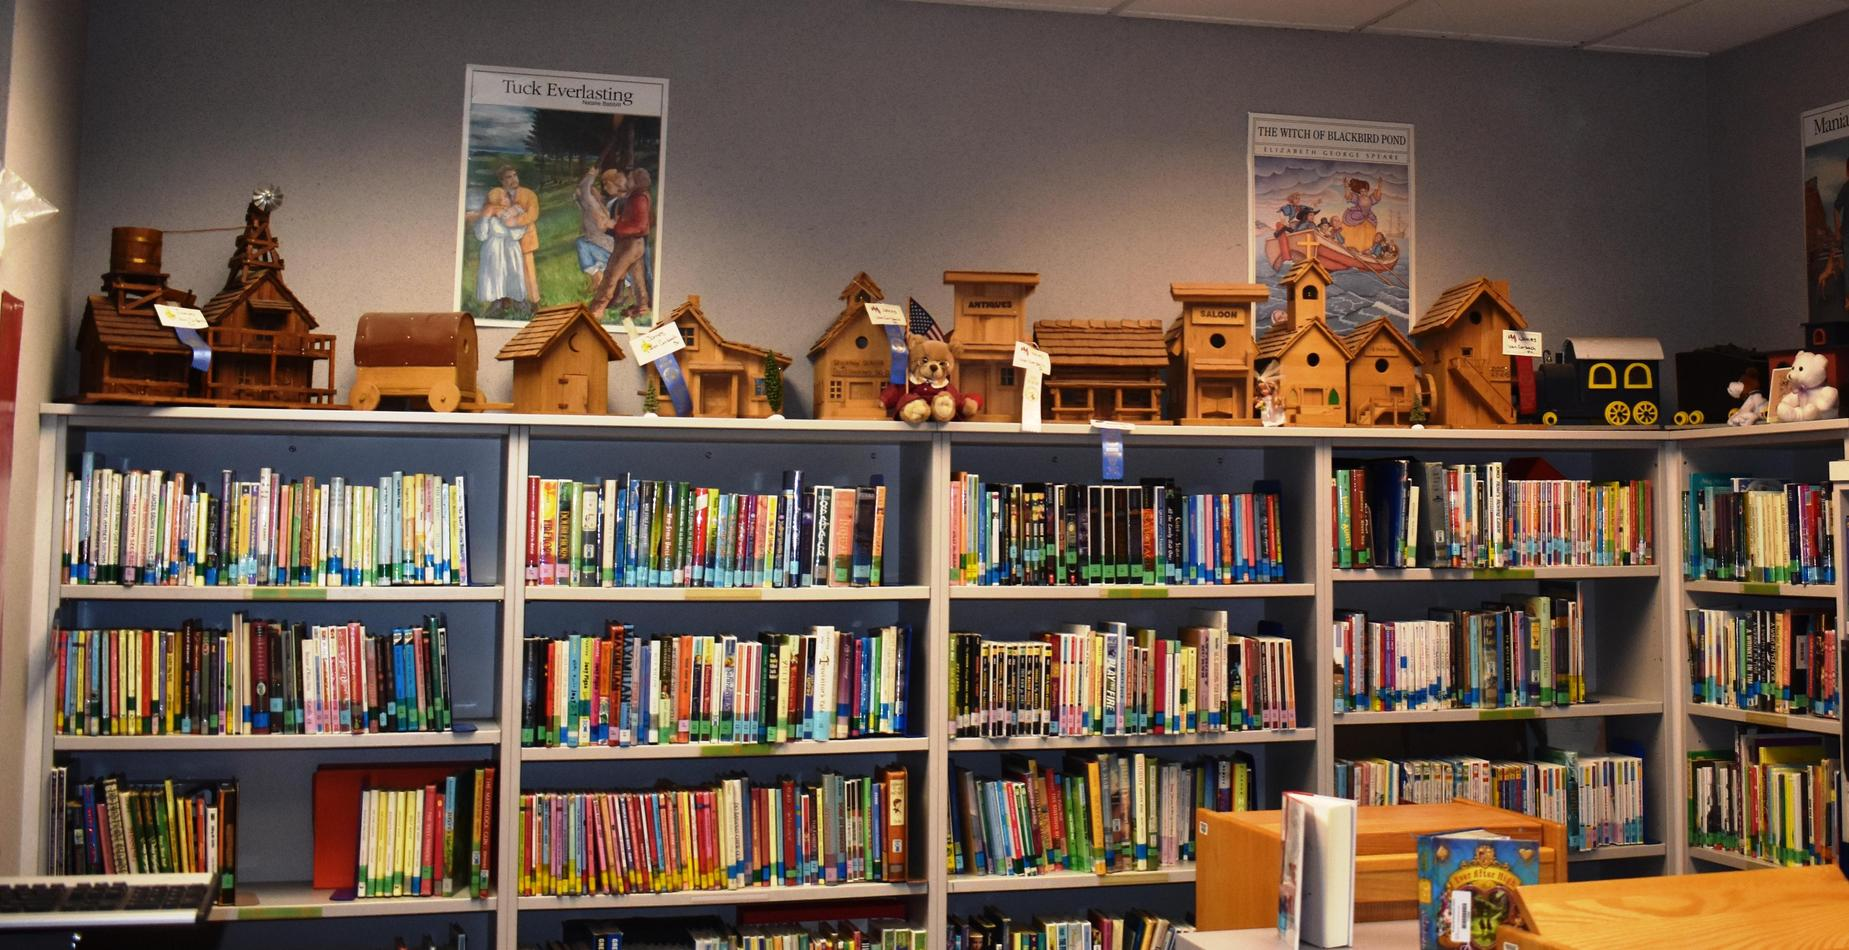 The library book shelves with hand made bird houses lining the top.  They were created by Mrs. DeBock's father.